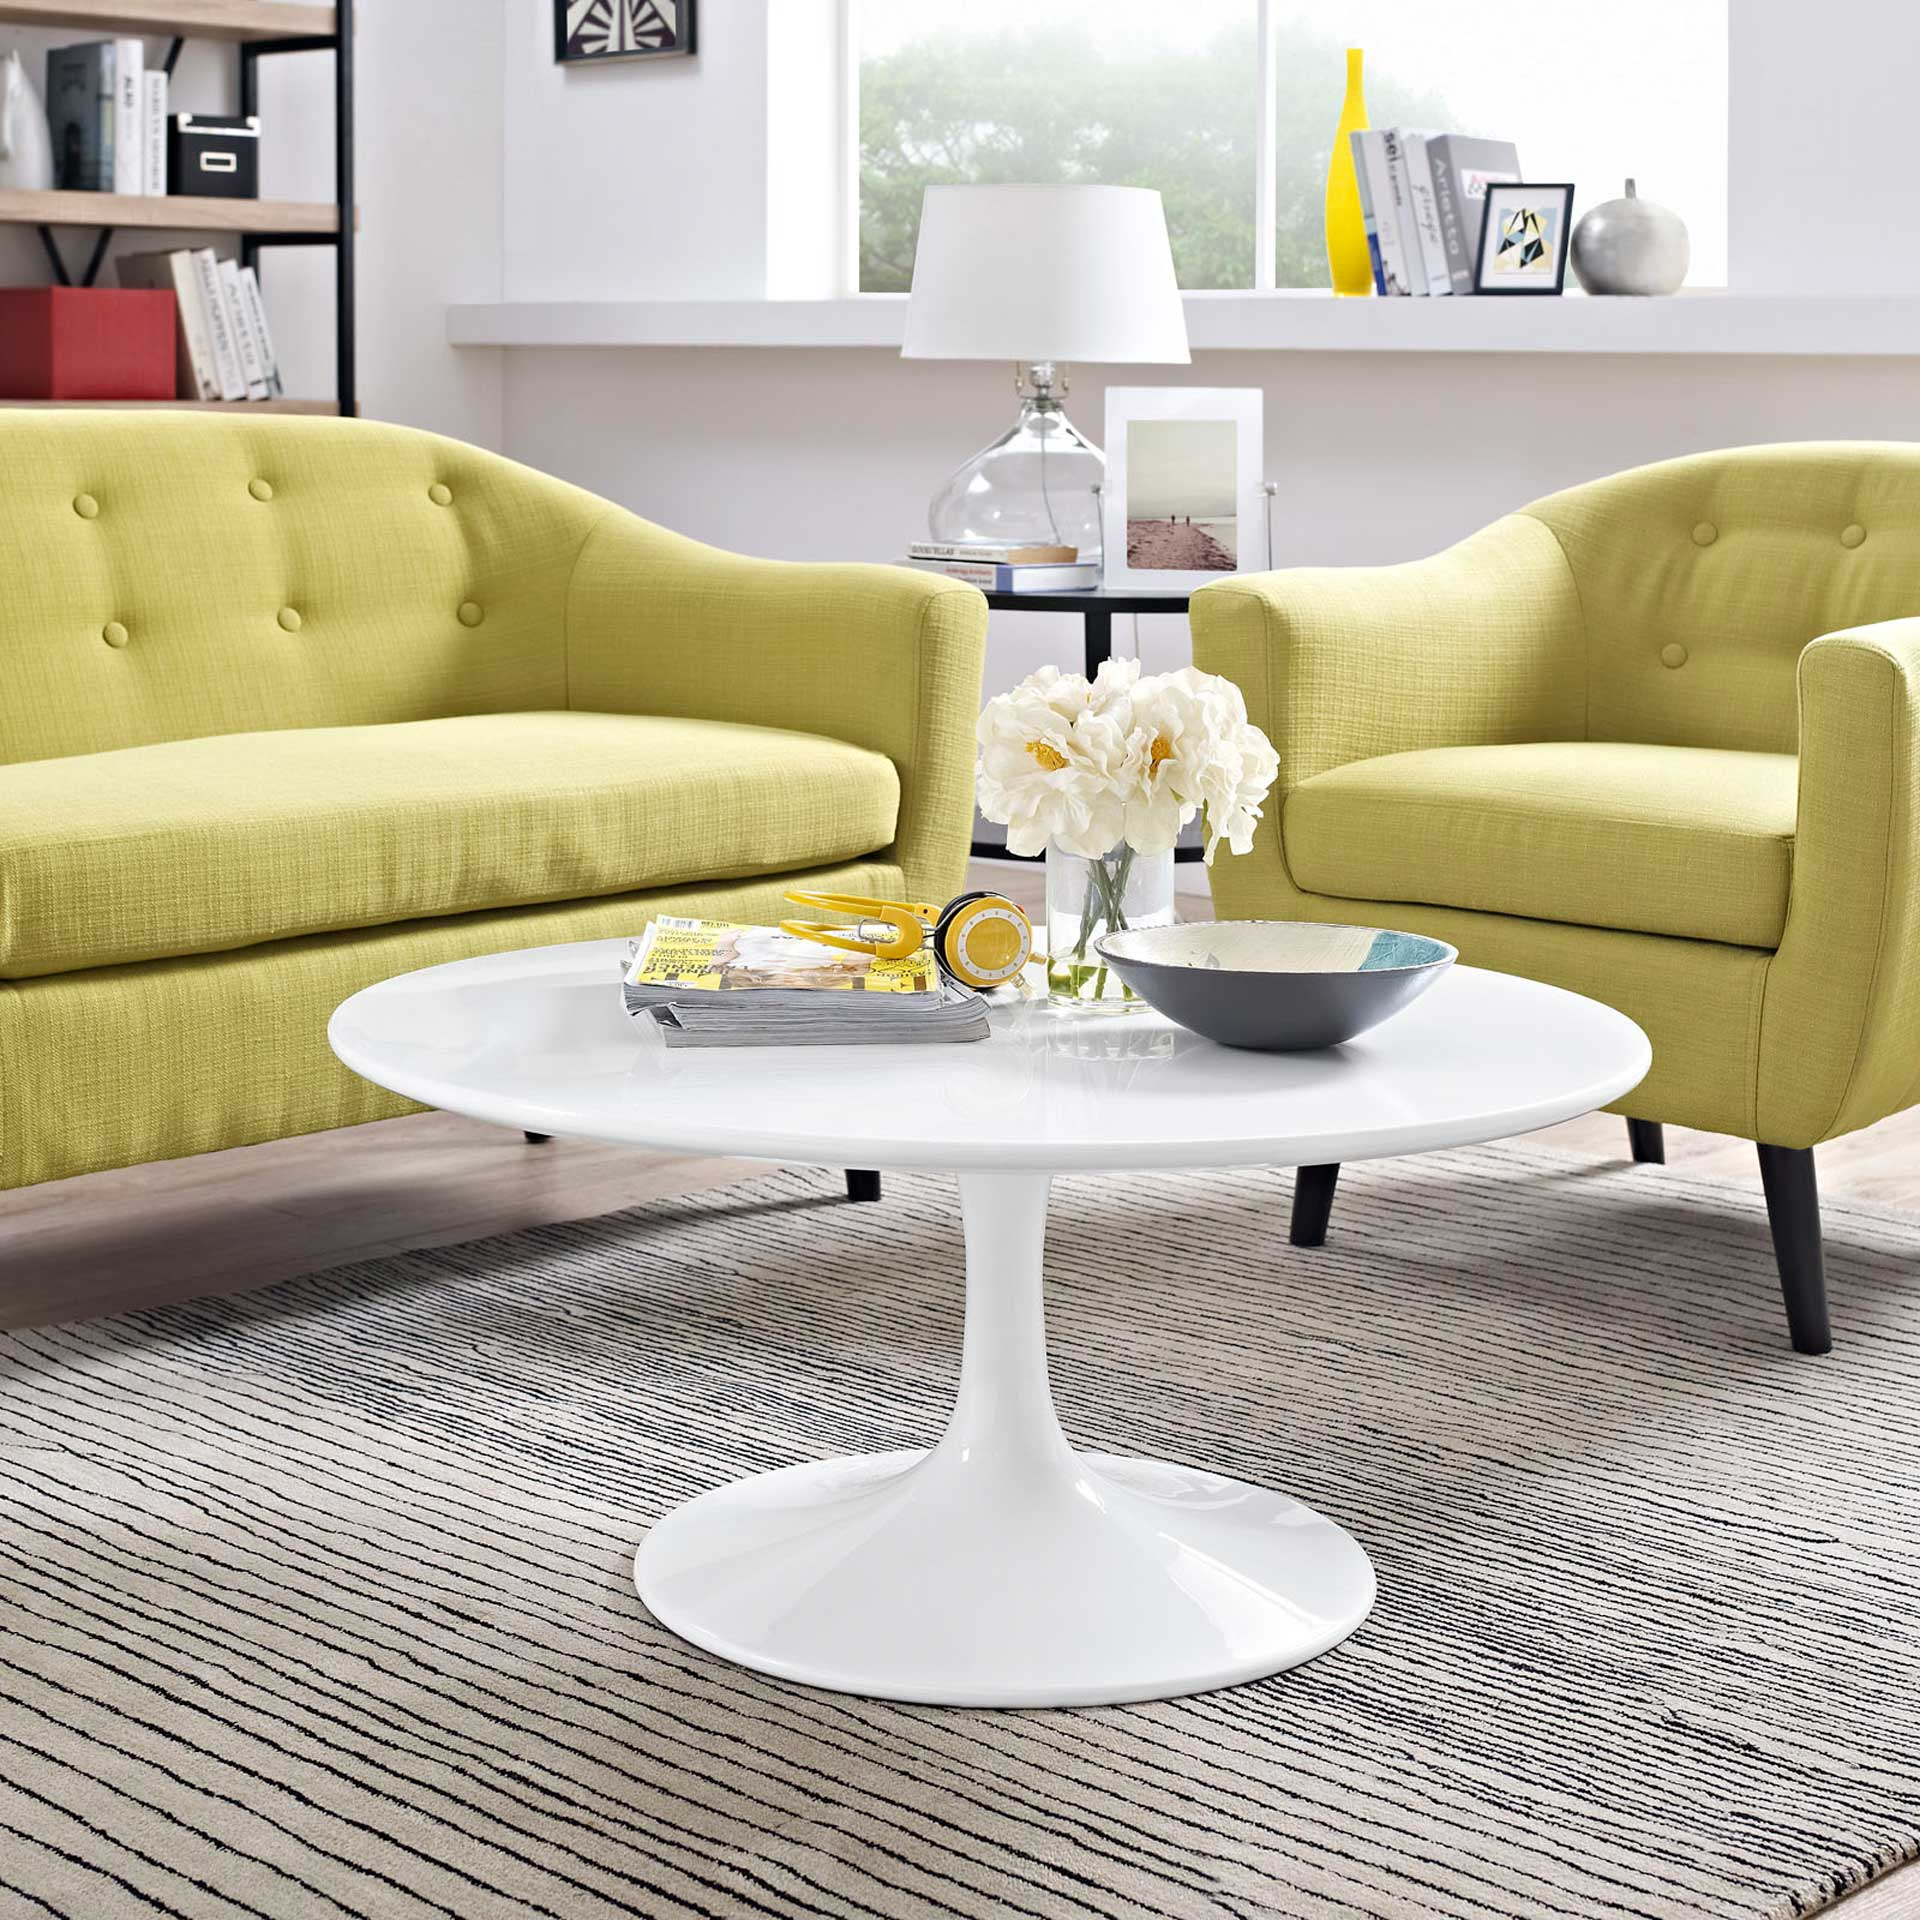 Lore Round Coffee Table White